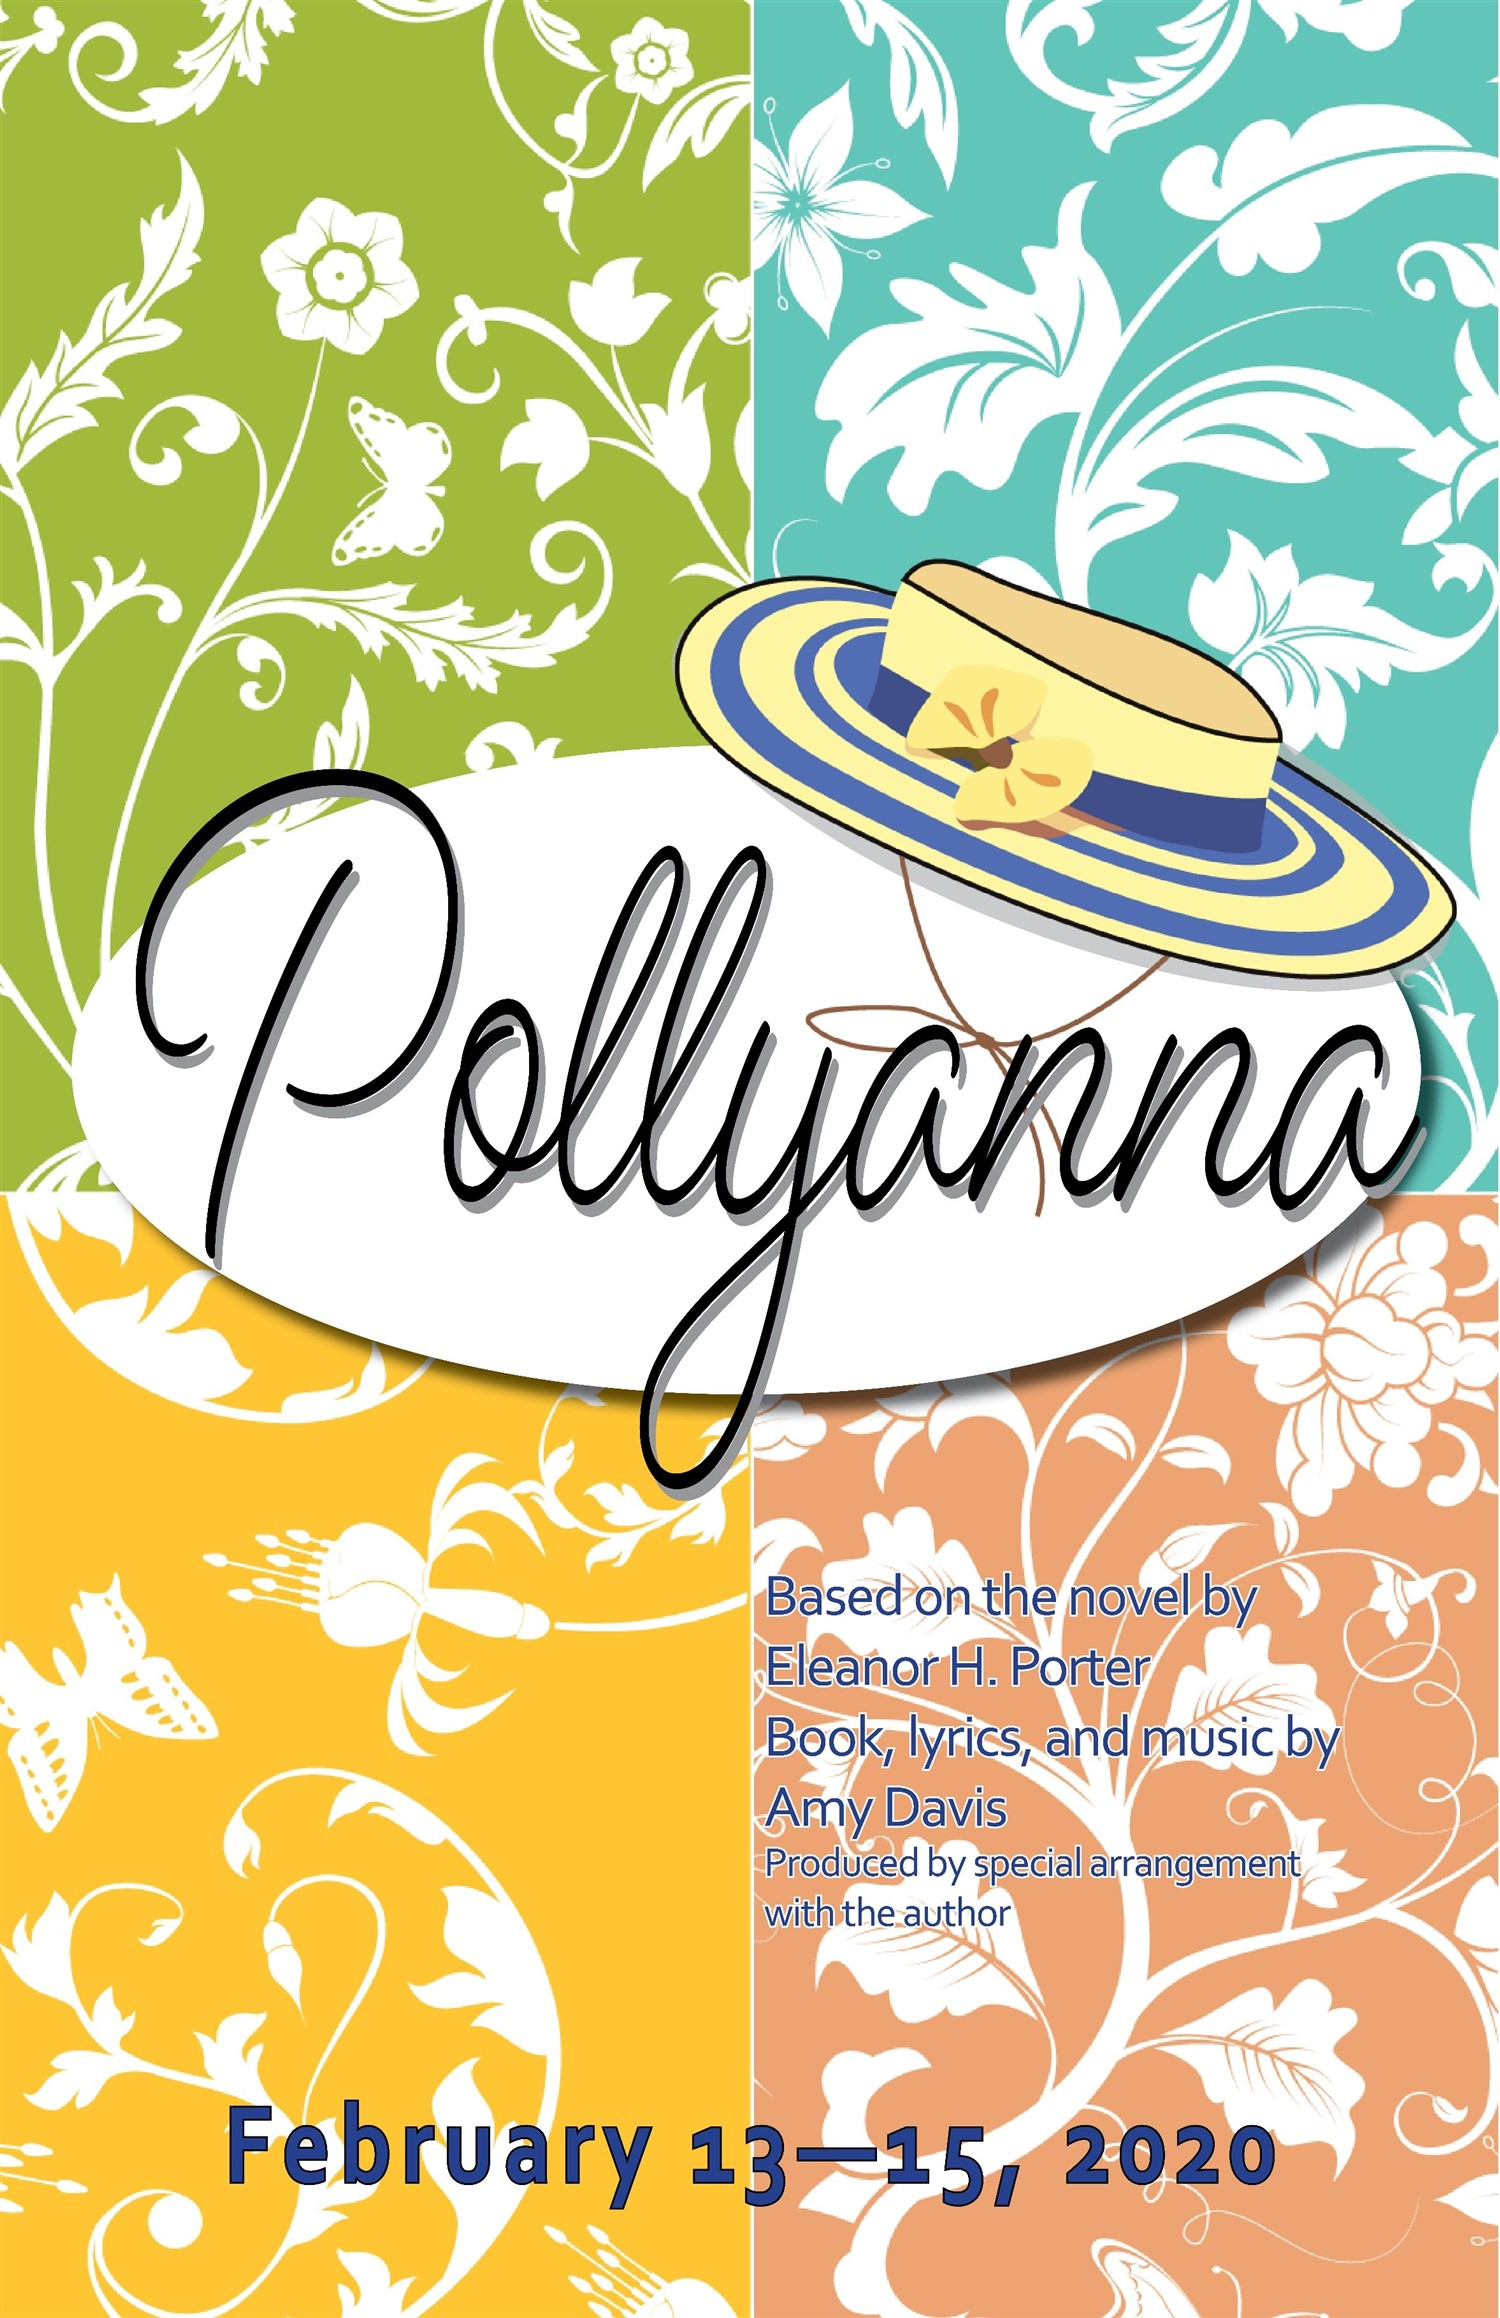 Pollyanna Thursday, February 13, 2020 @ 7:30 pm on Feb 13, 19:30@Spiritual Twist Productions - Pick a seat, Buy tickets and Get information on Spiritual Twist Productions tickets.spiritualtwist.com